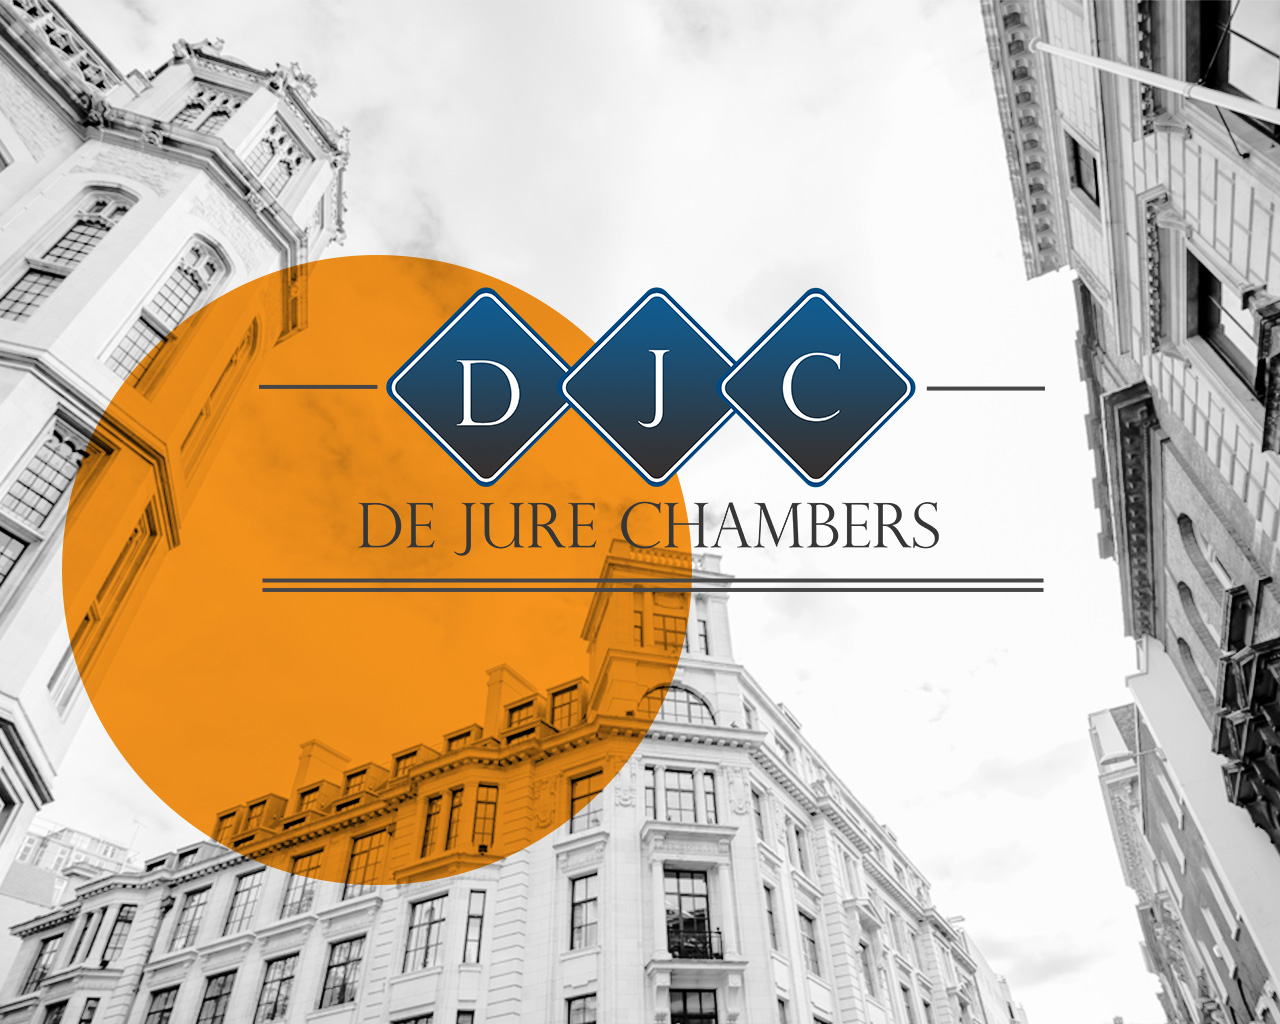 ITS GOLD FOR DE JURE CHAMBERS